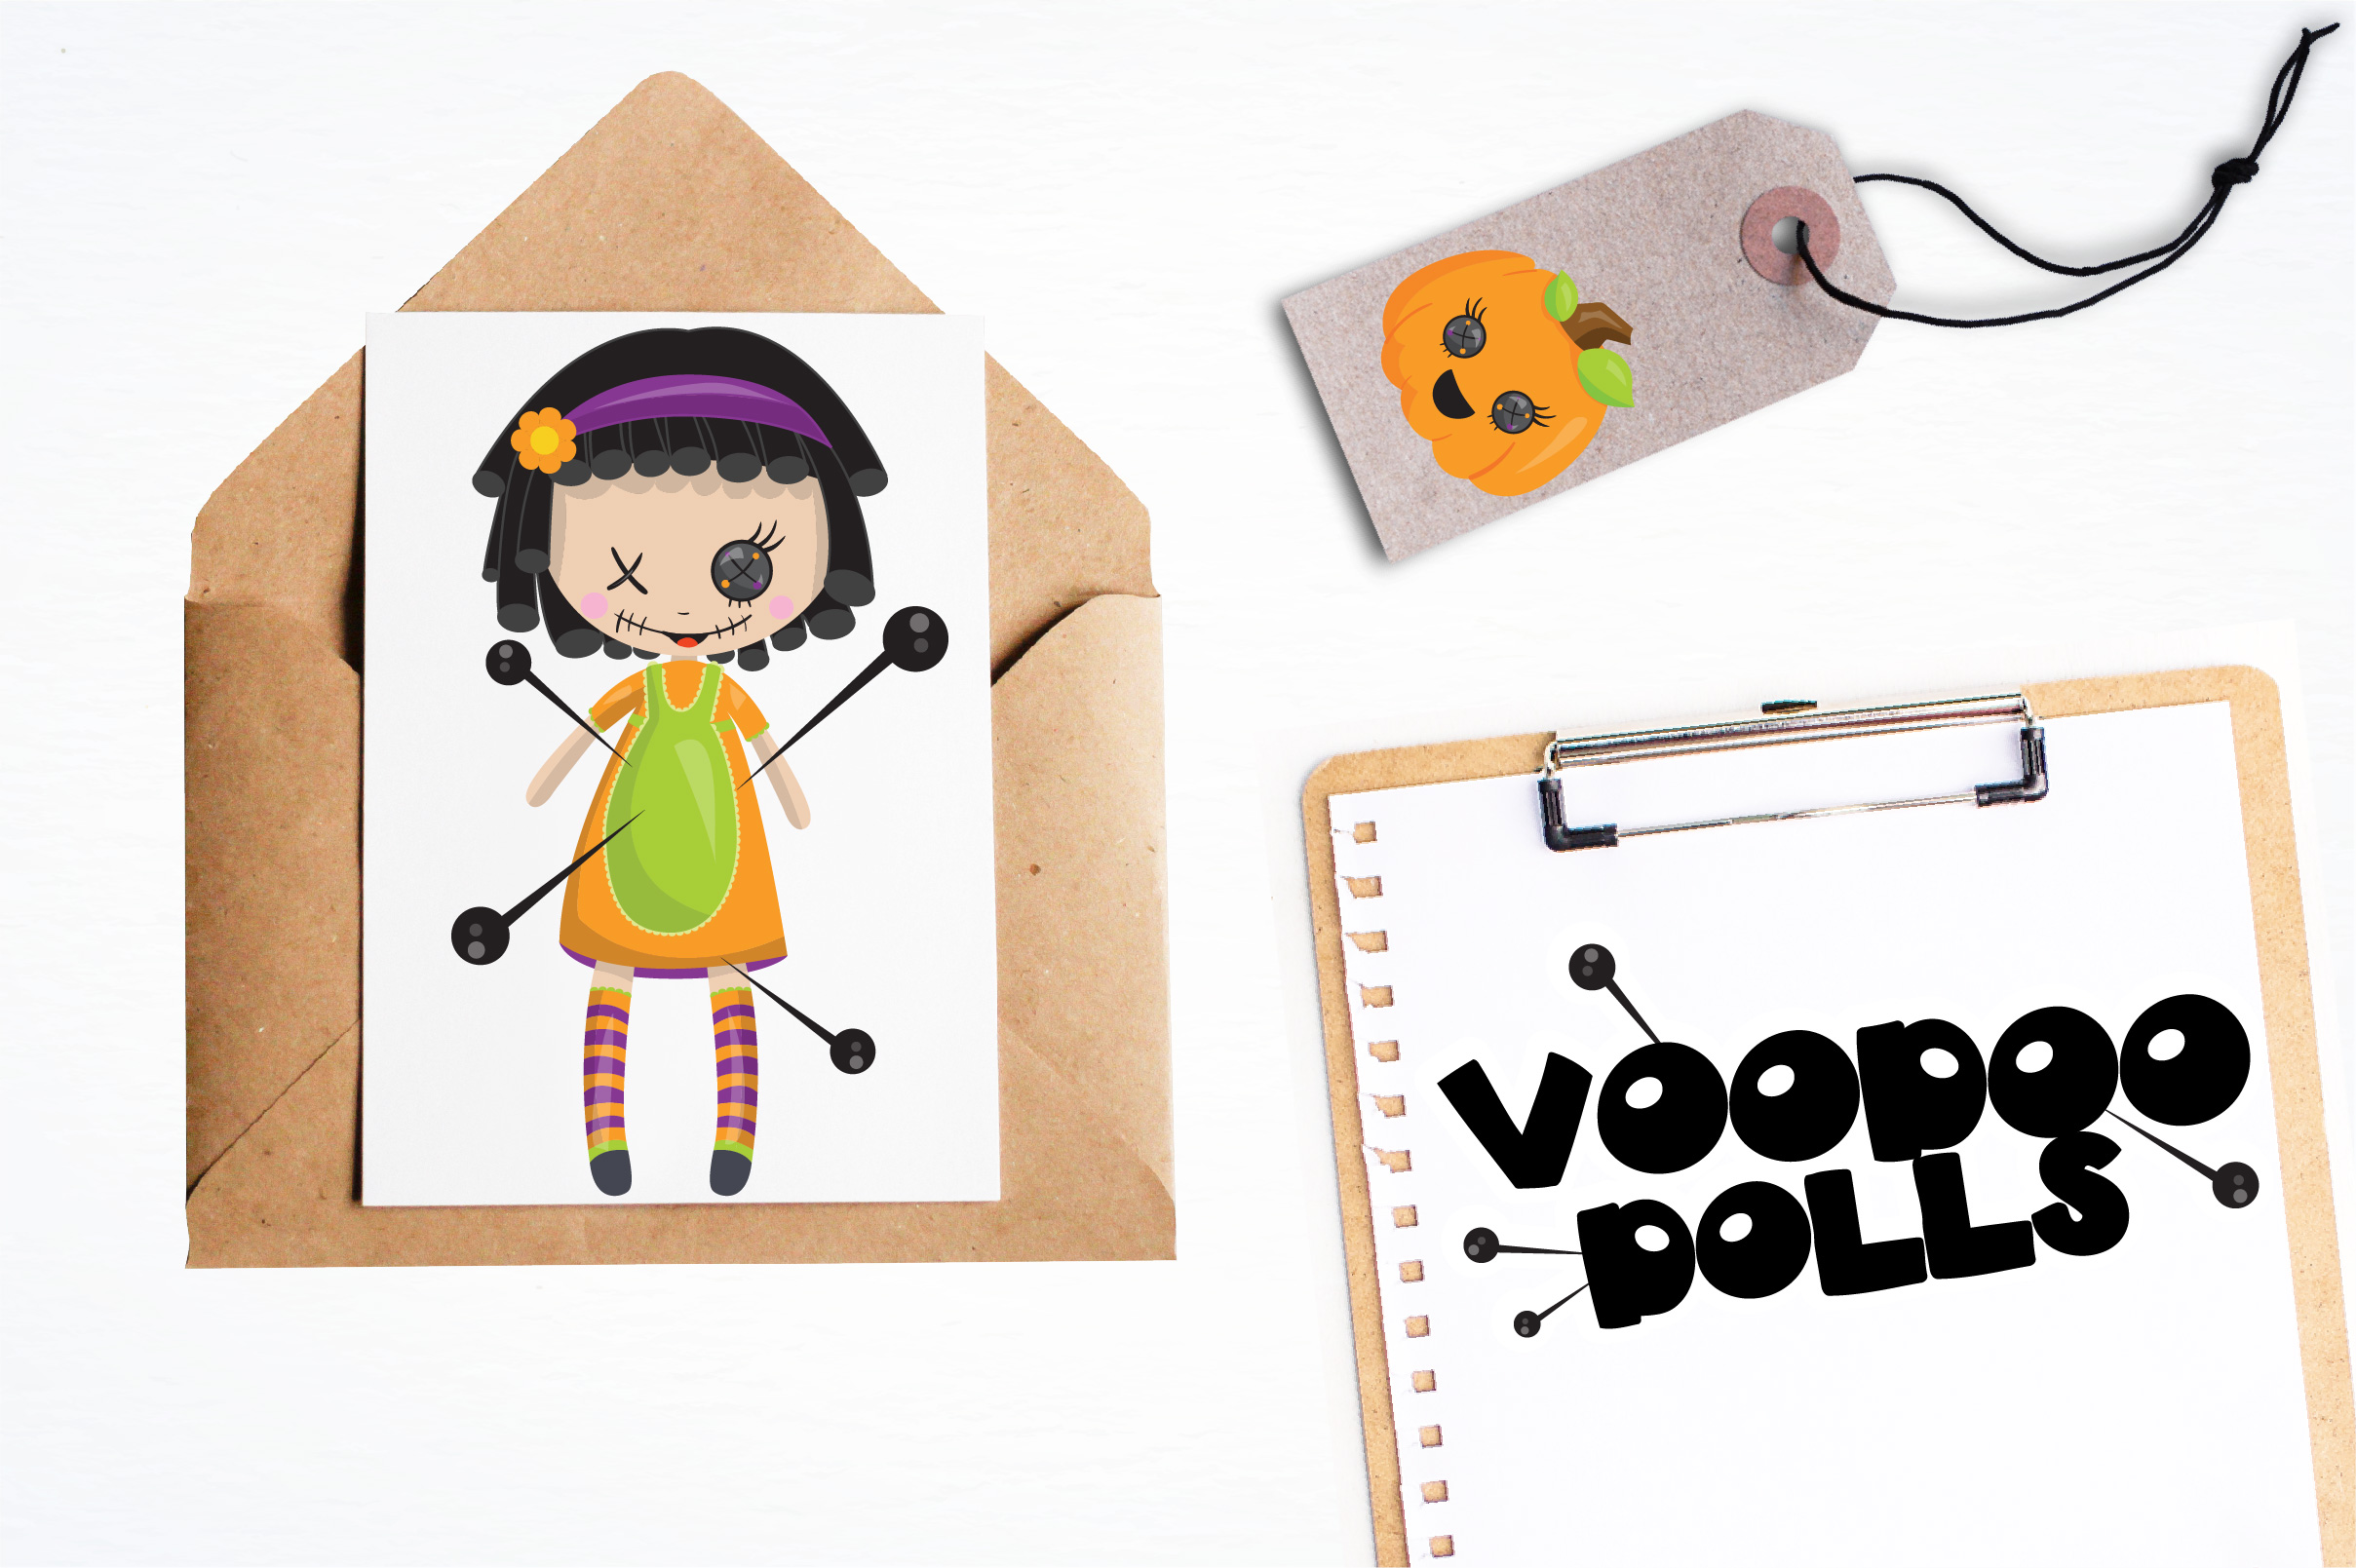 Voodoo dolls graphics and illustrations example image 4